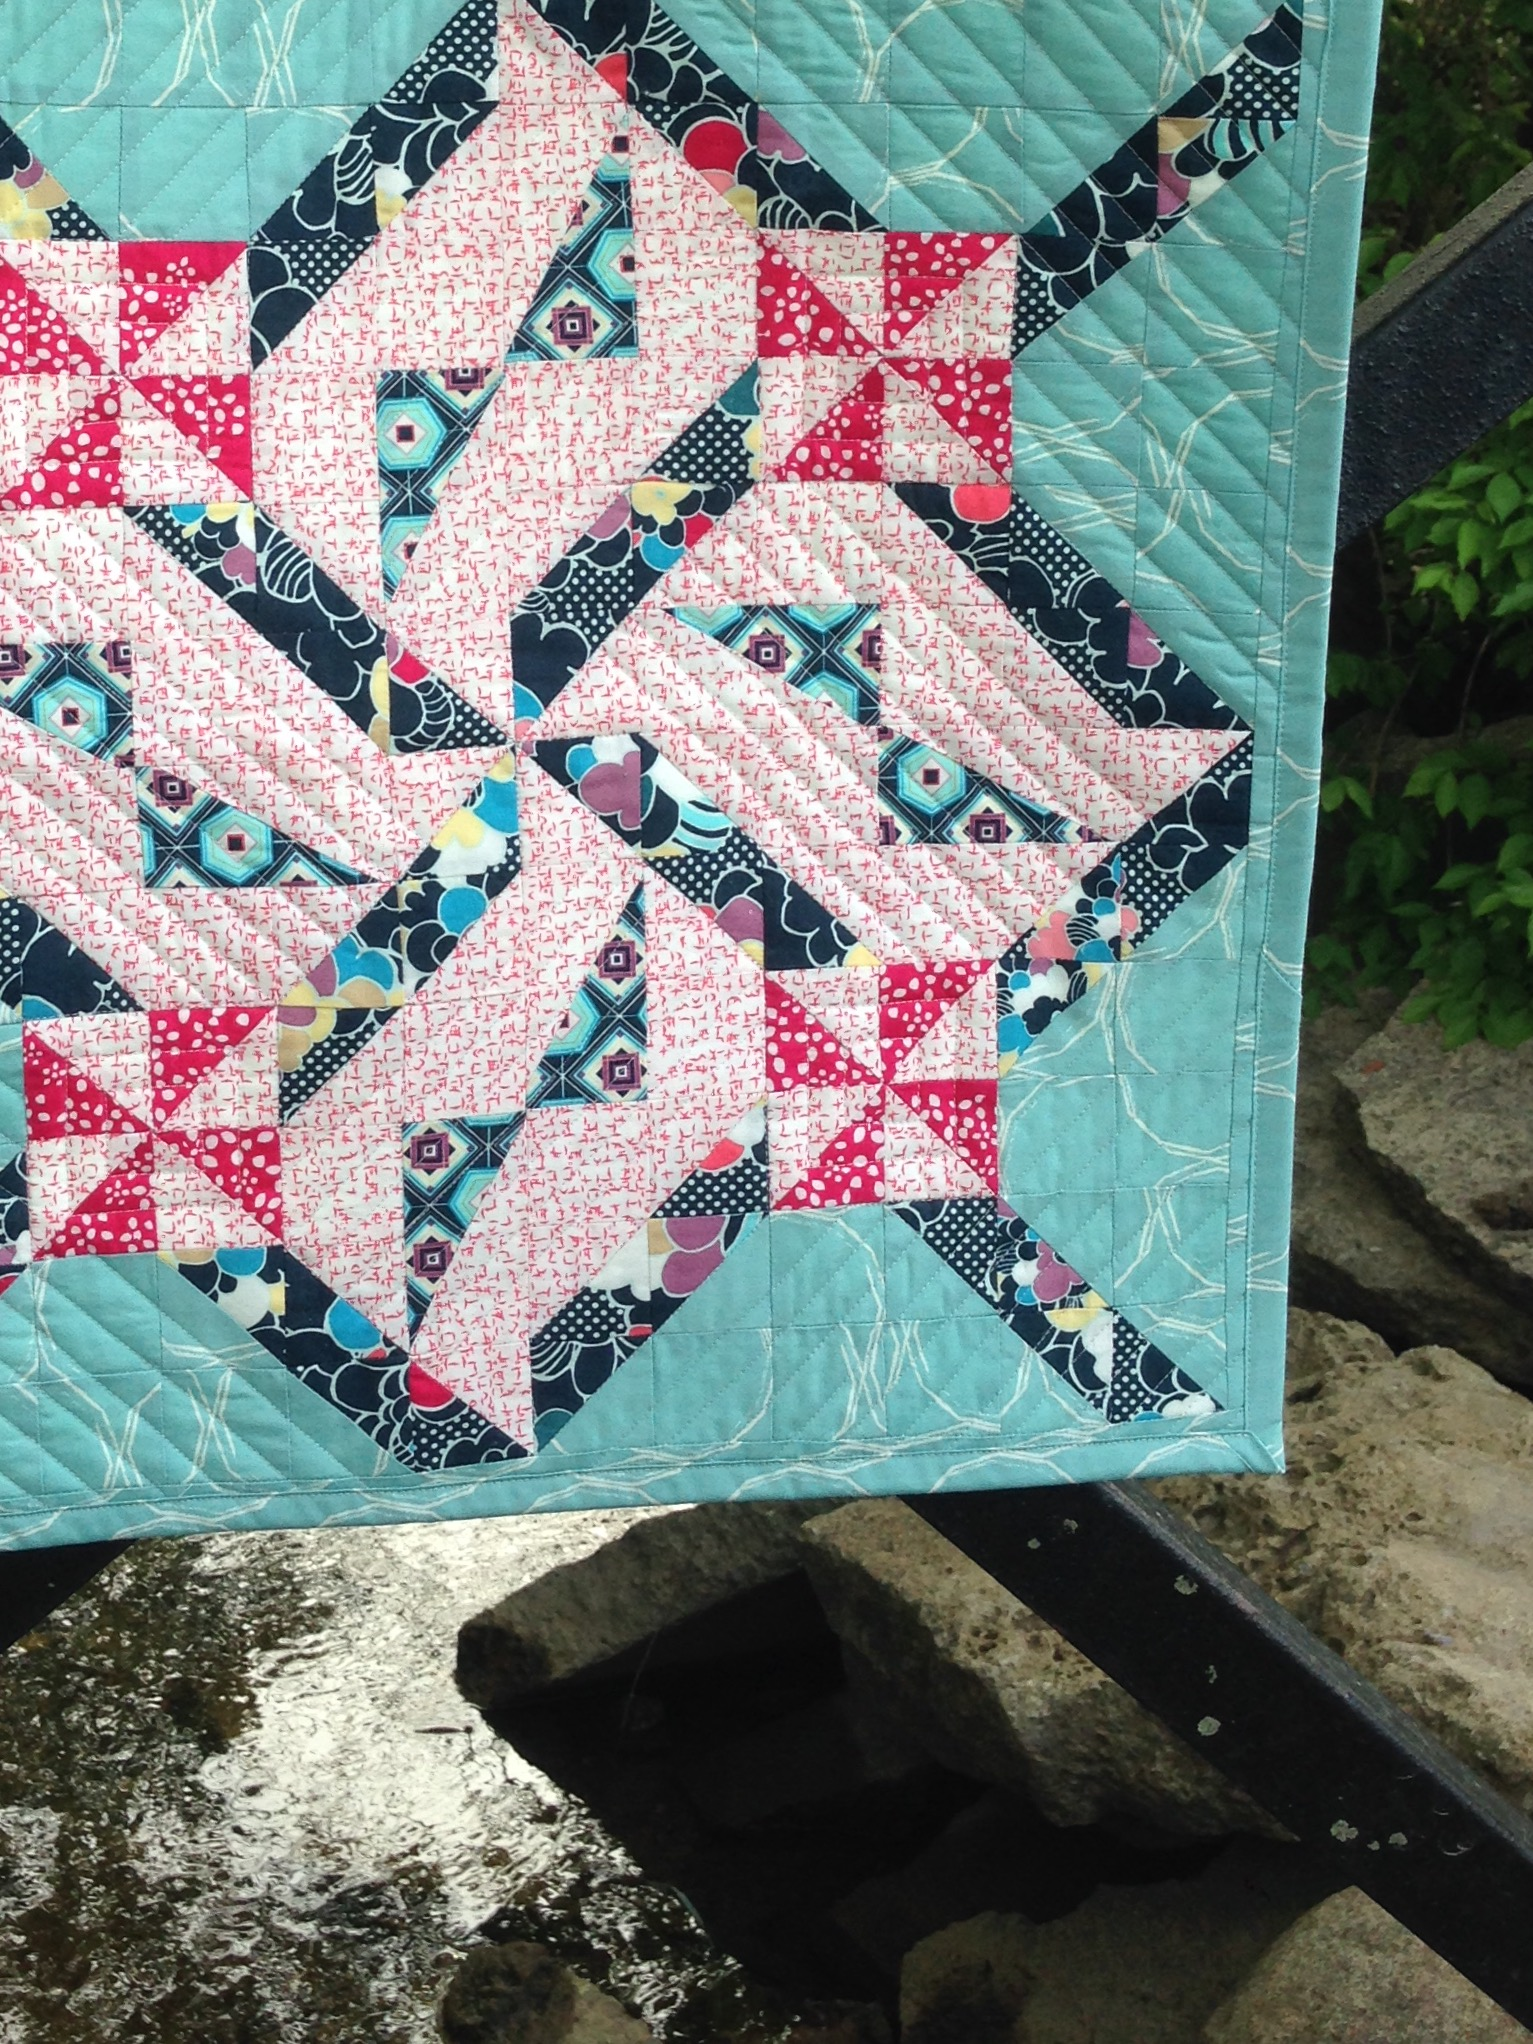 Daring Edge Quilt on Bridge